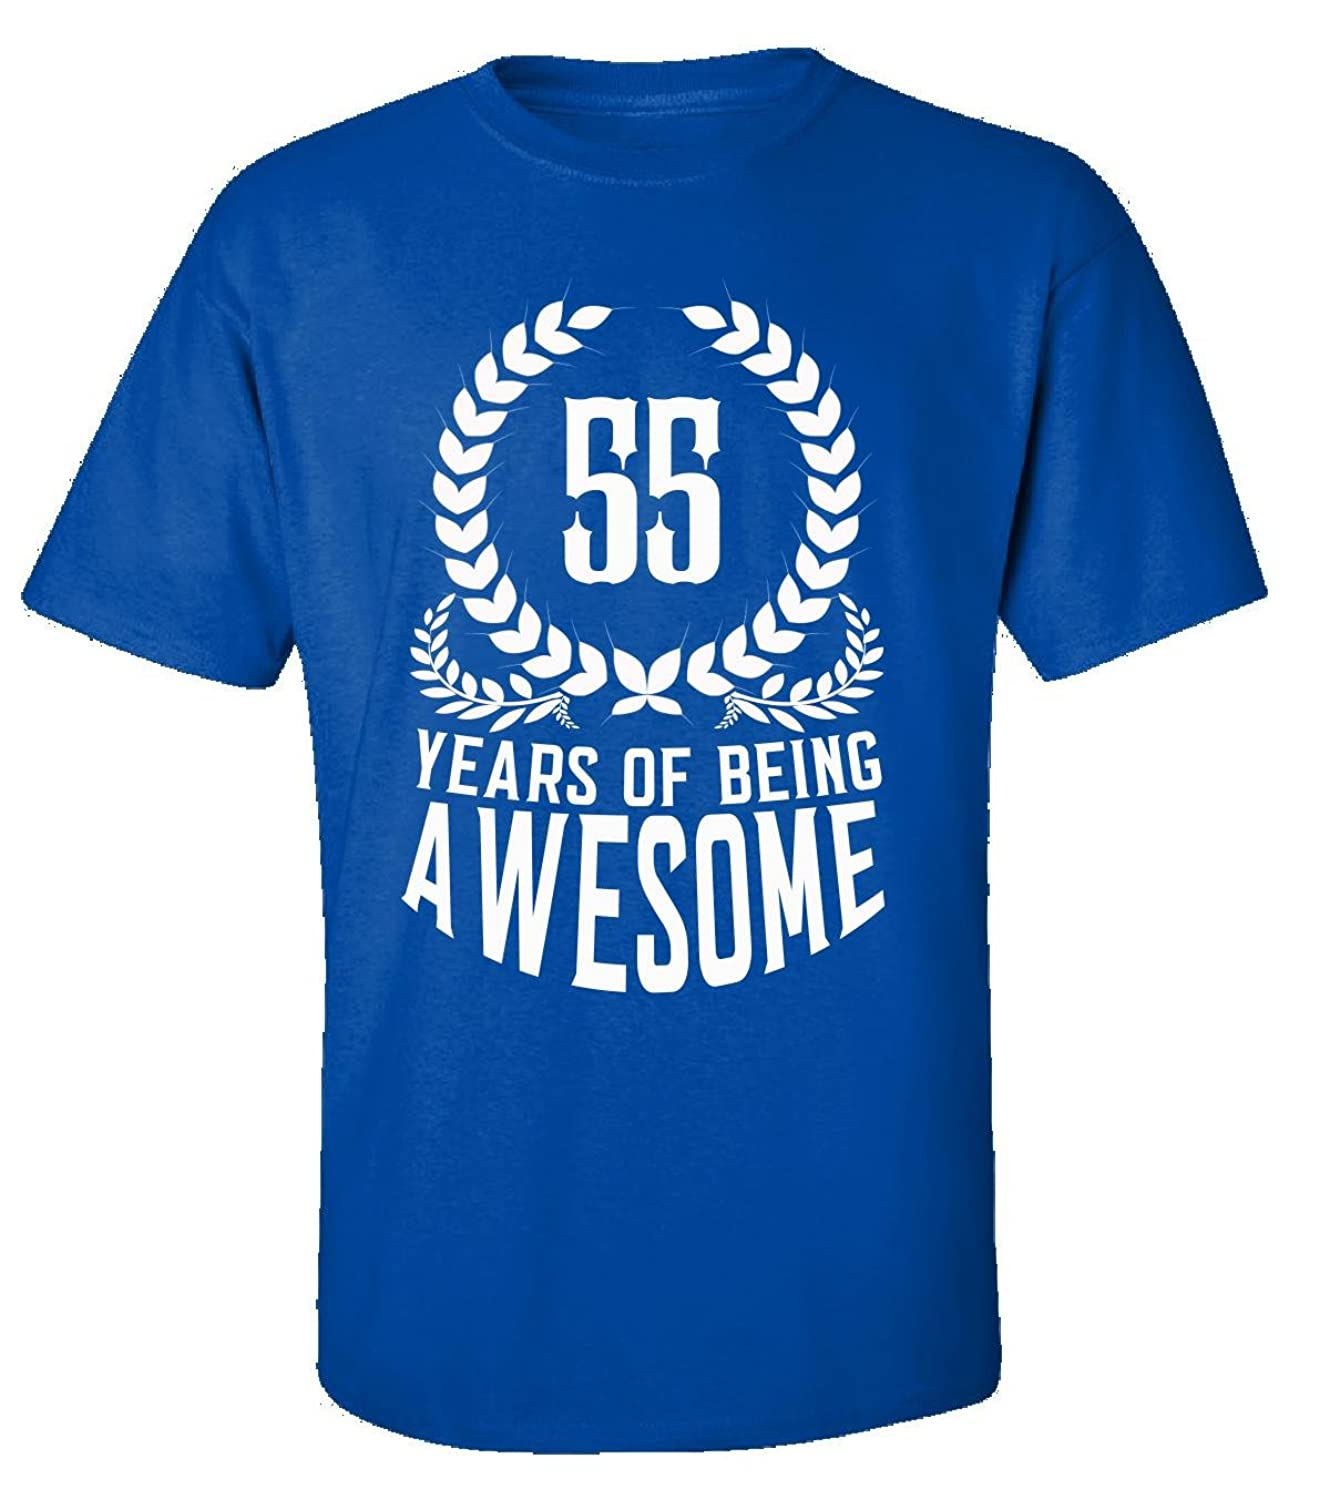 55th Birthday Gift For Men Woman 55 Years Of Being Awesome - Adult Shirt